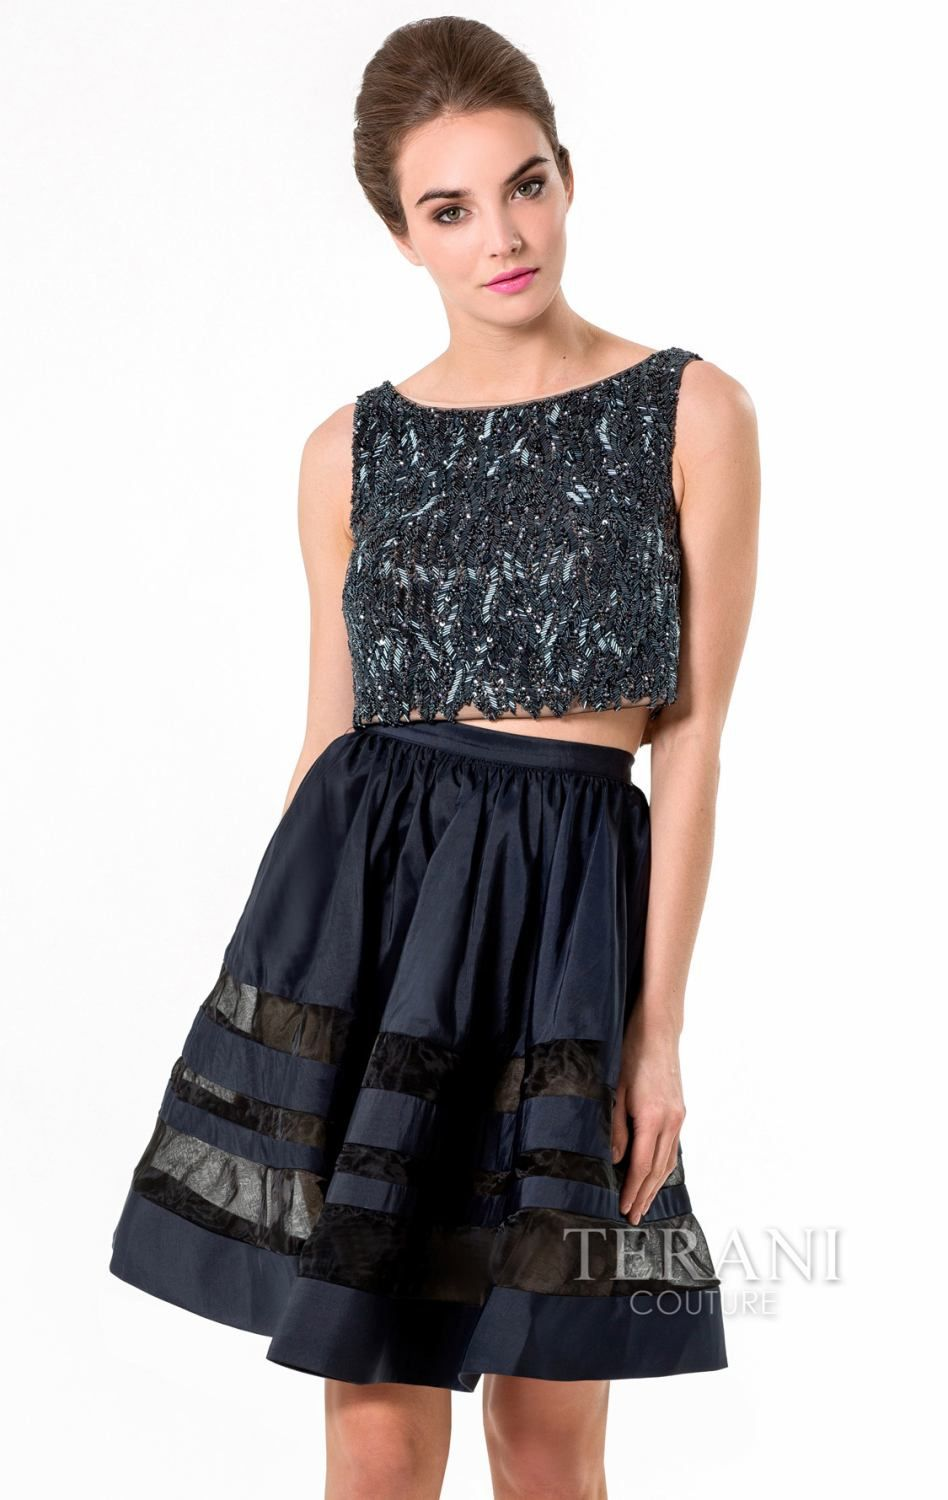 Dress to impress in the stunning two piece dress terani couture